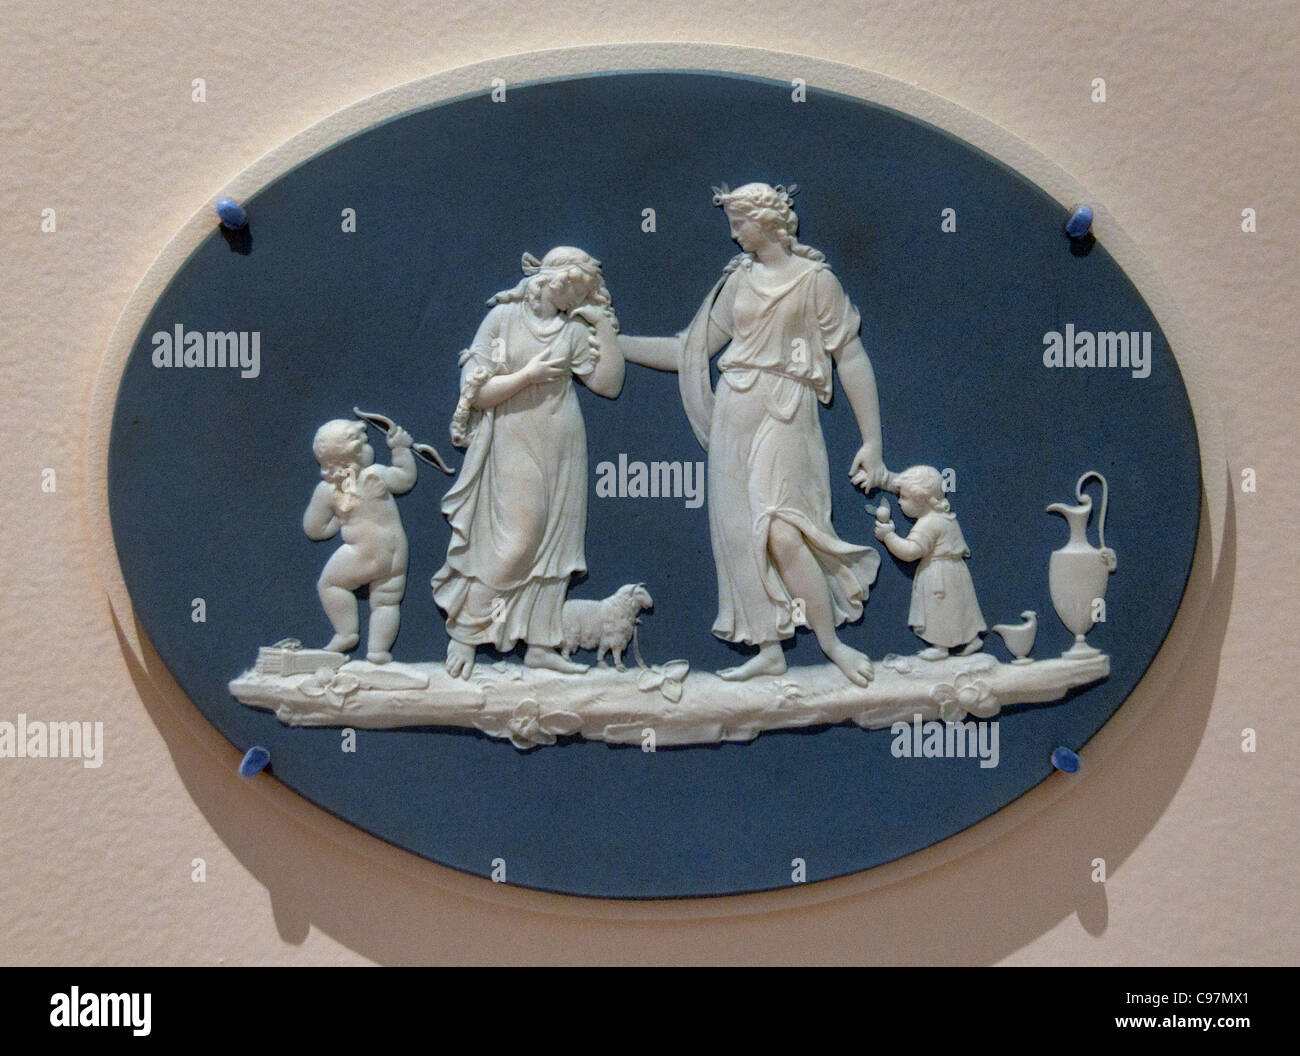 Blue Jasper Oval Plaque offering to Peace 18th Cent Joshiah Wedgwood and sons Stoneware  English England - Stock Image